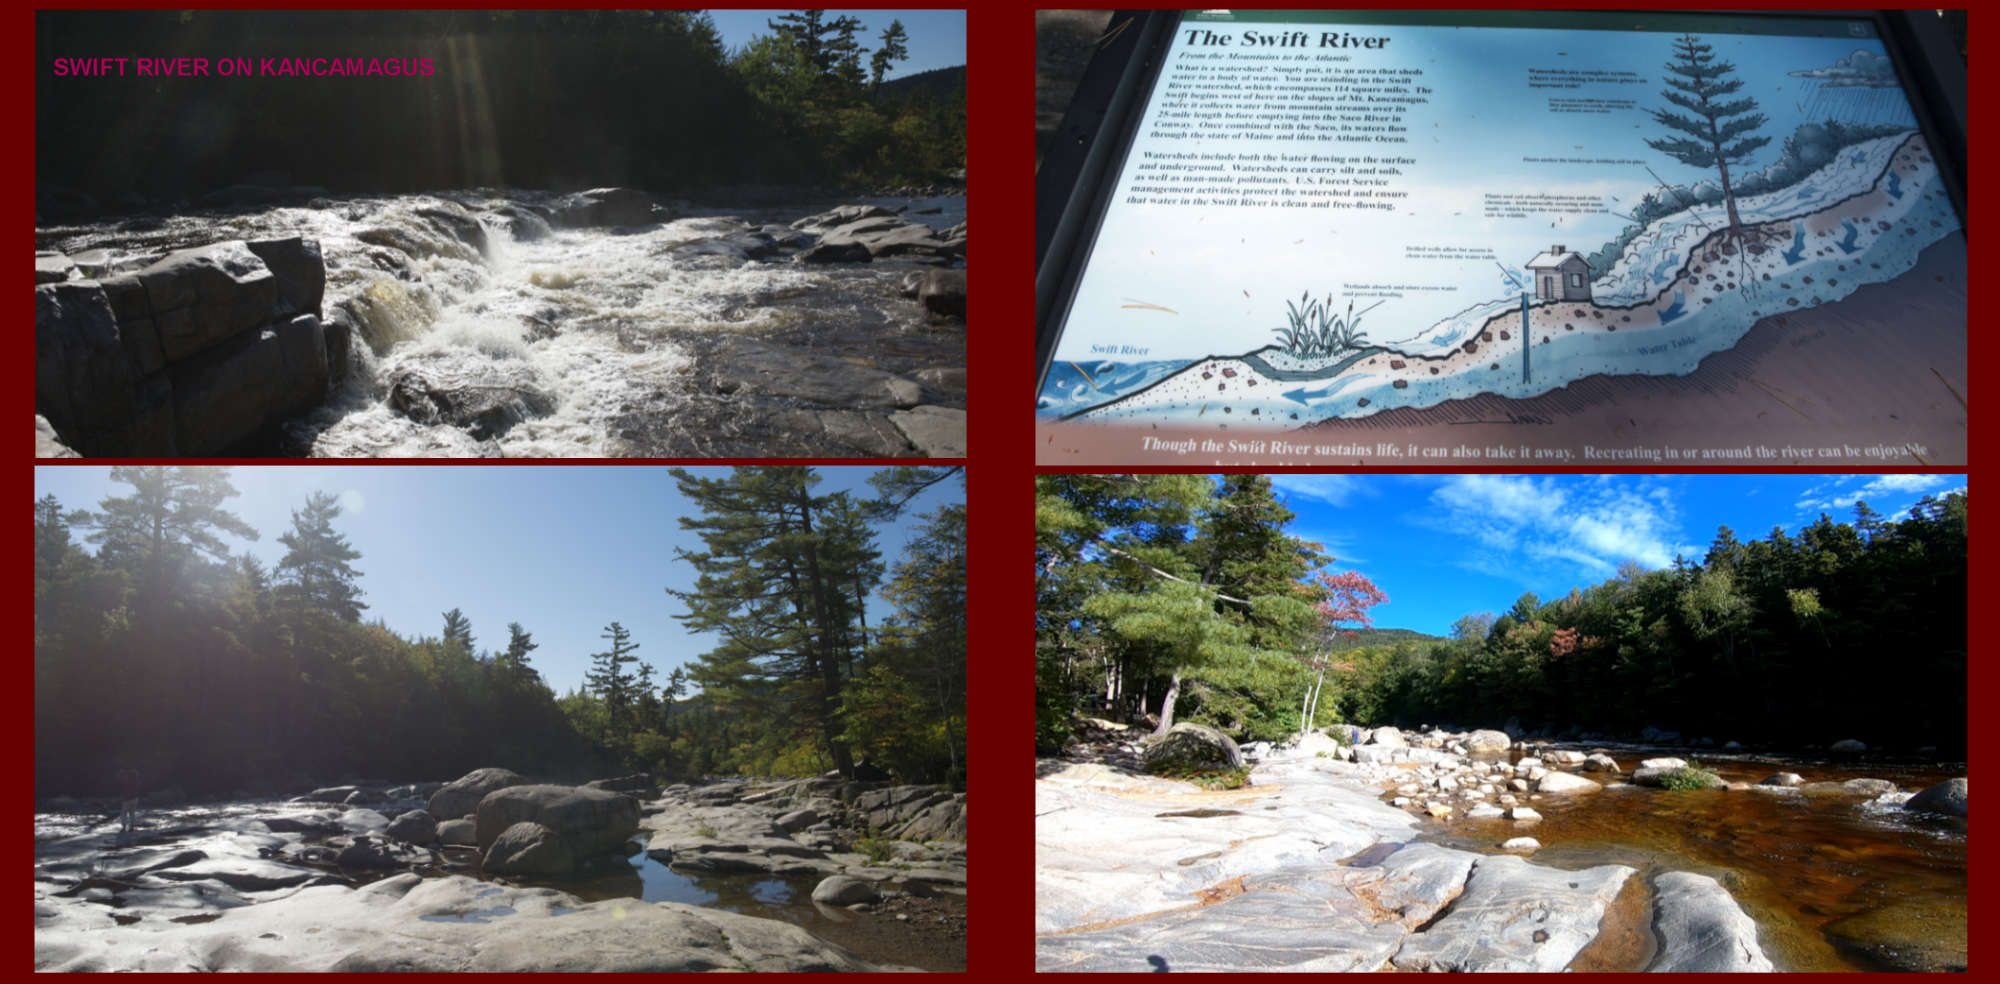 Fall in New-England Album - Page 34: Swift River  - Page 35: Shallow waters